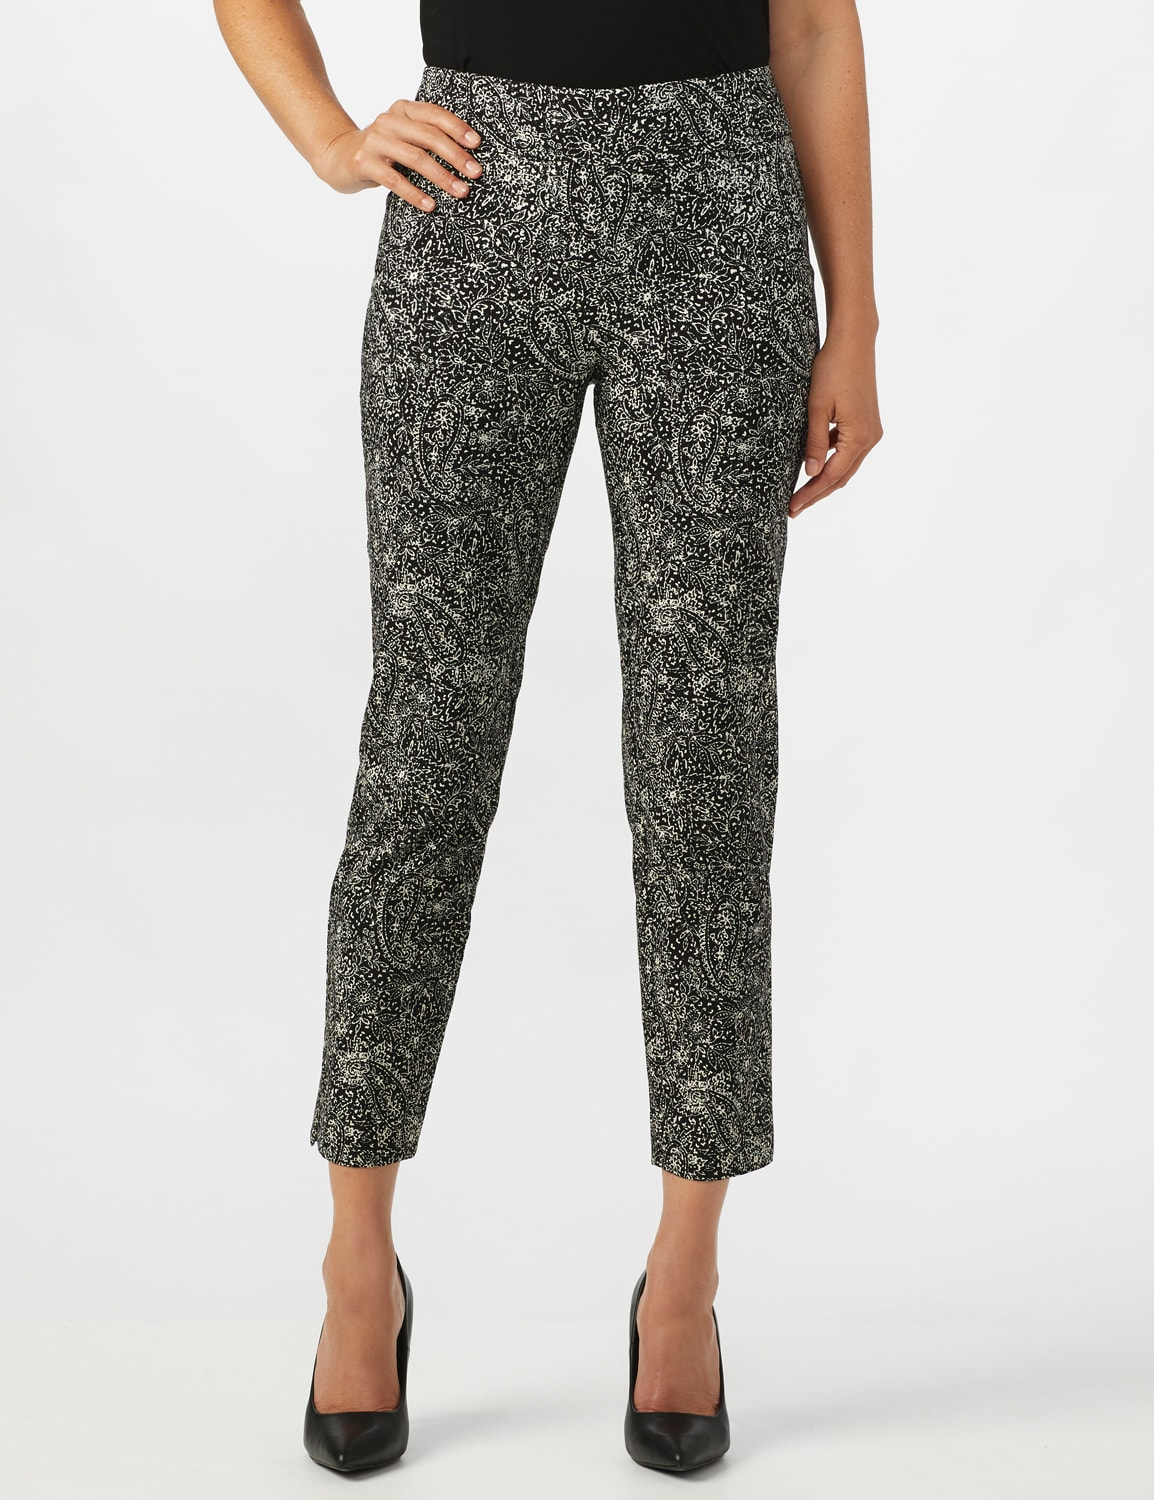 Roz & Ali Paisley Print Superstretch Pull On Ankle Pants With Slits - Black Pattern - Front